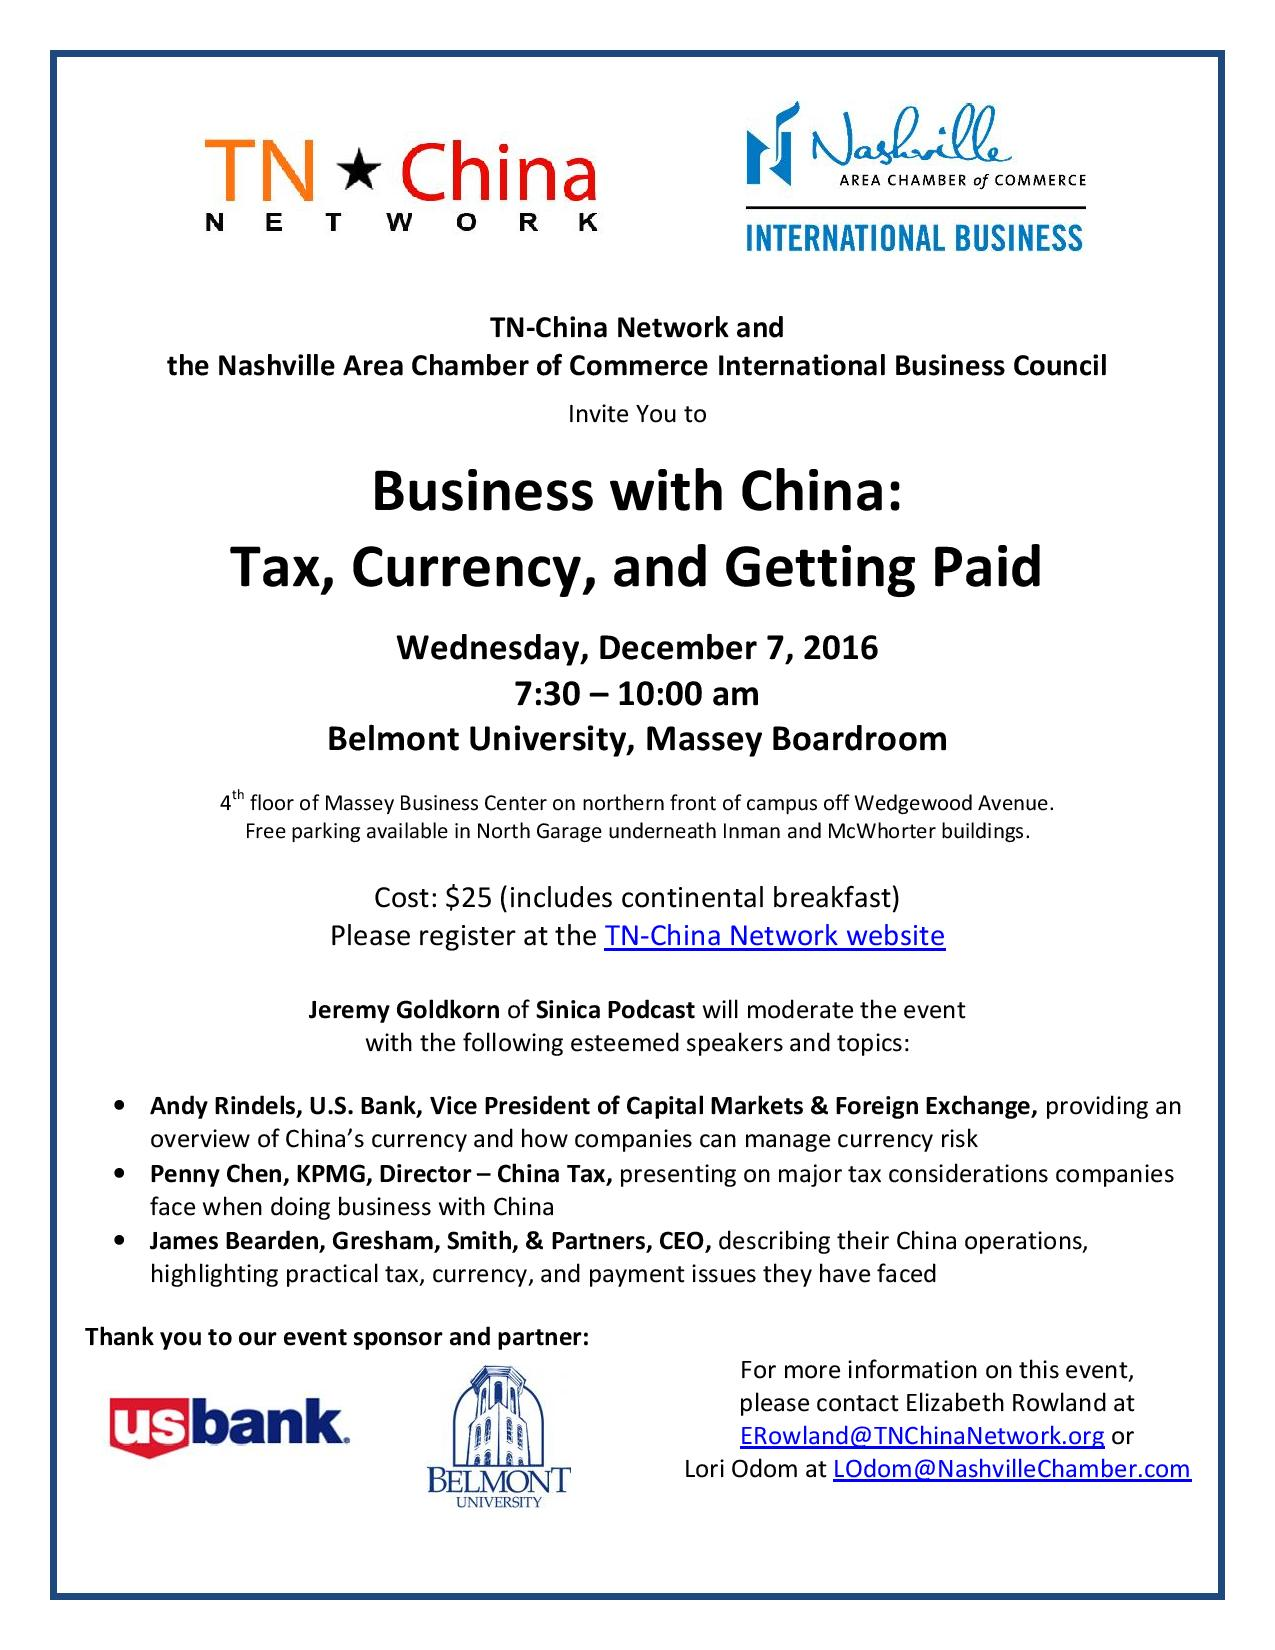 Business with China event flier